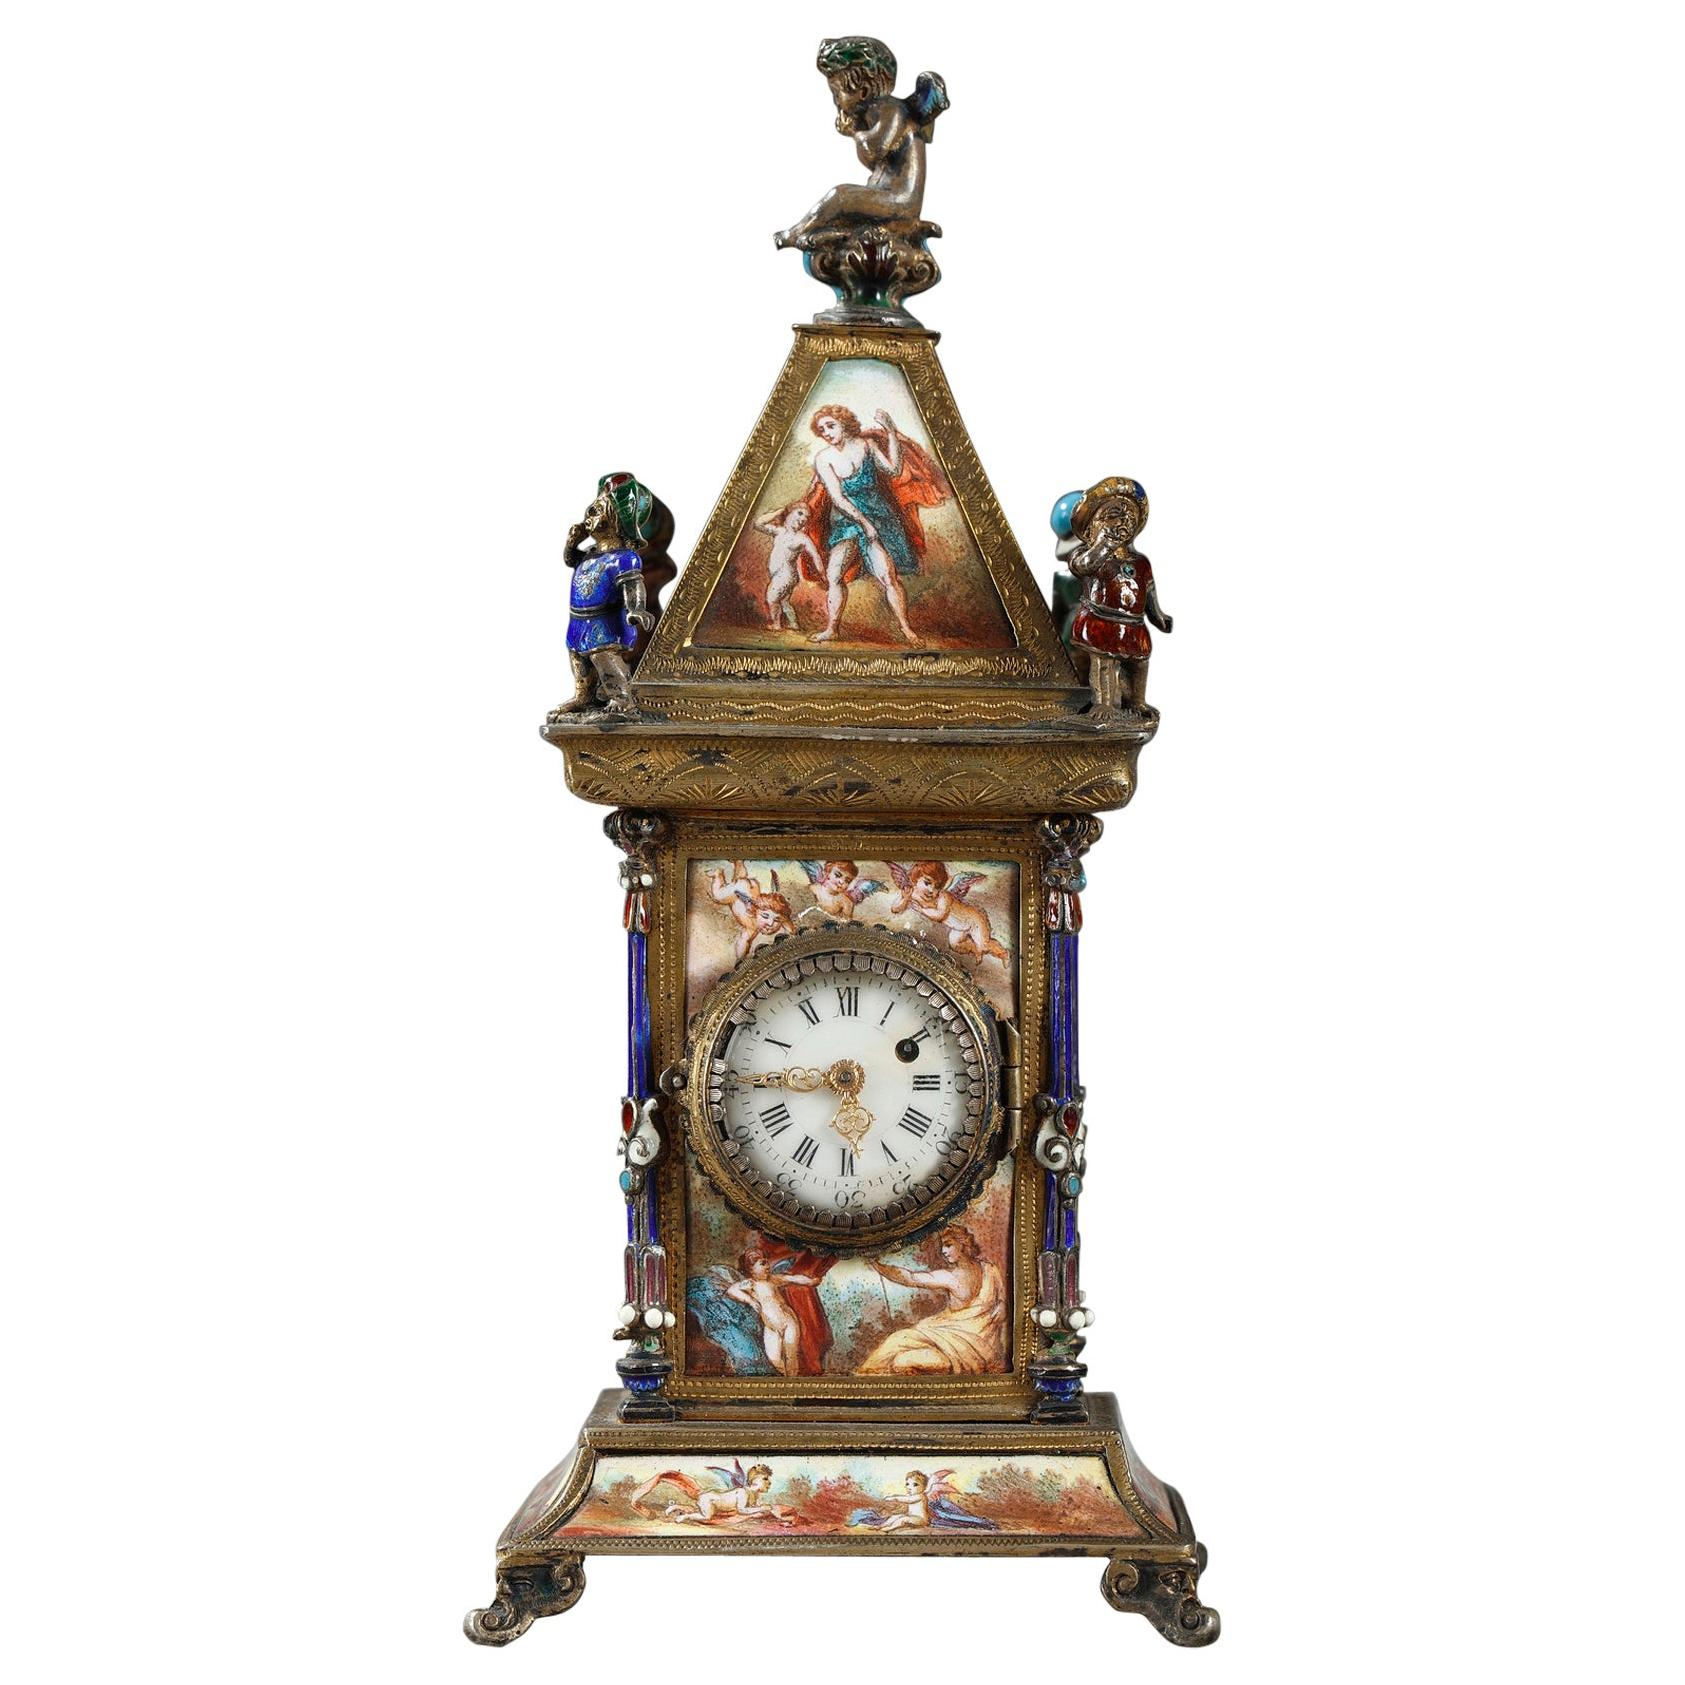 Viennese Enamel and Silver Clock, 19th Century